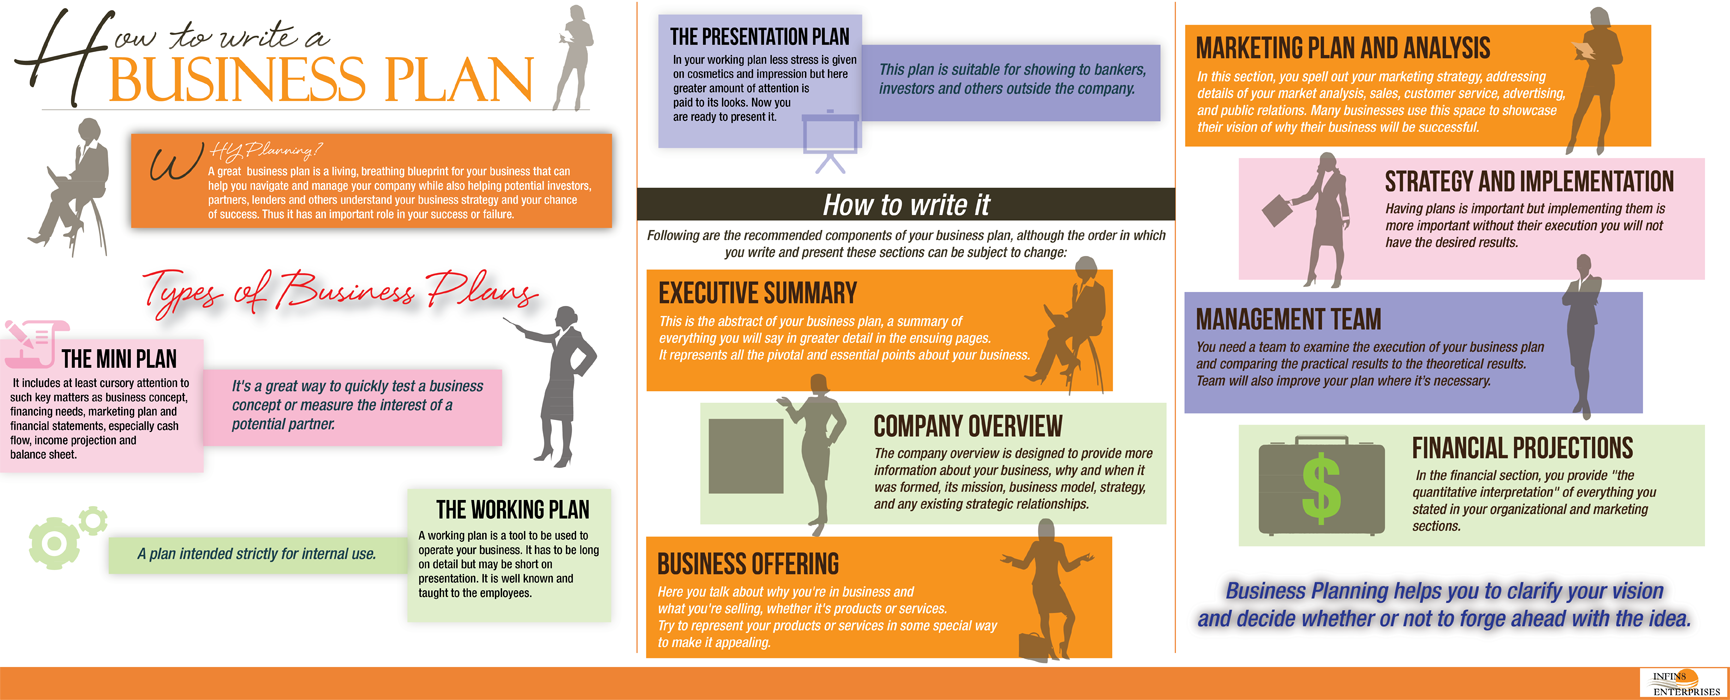 How to Write a Business Plan Infographic | Infin8 Enterprises